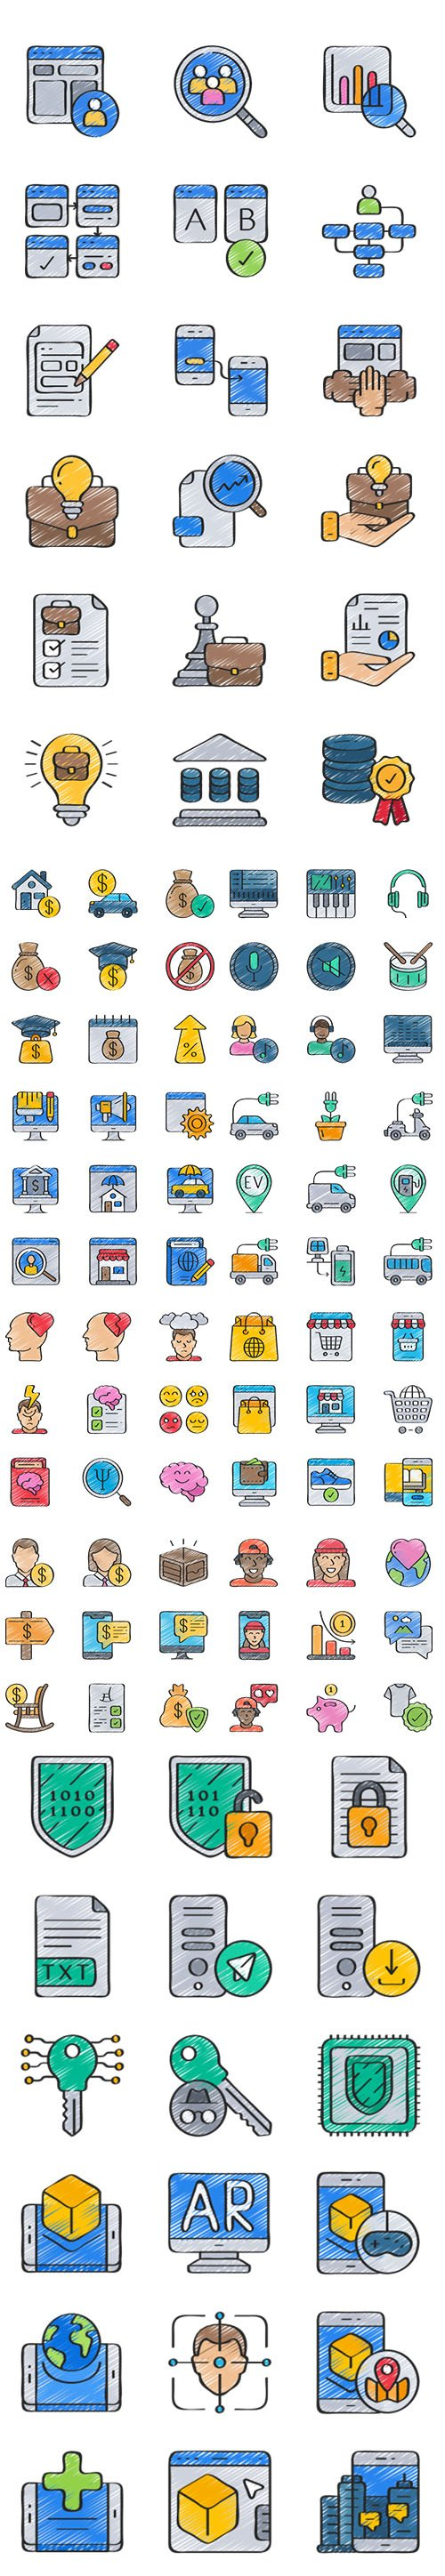 Big Icons Pack in 5 styles (Flat, Outline, Solid, Sketchy, Soft-Fill)